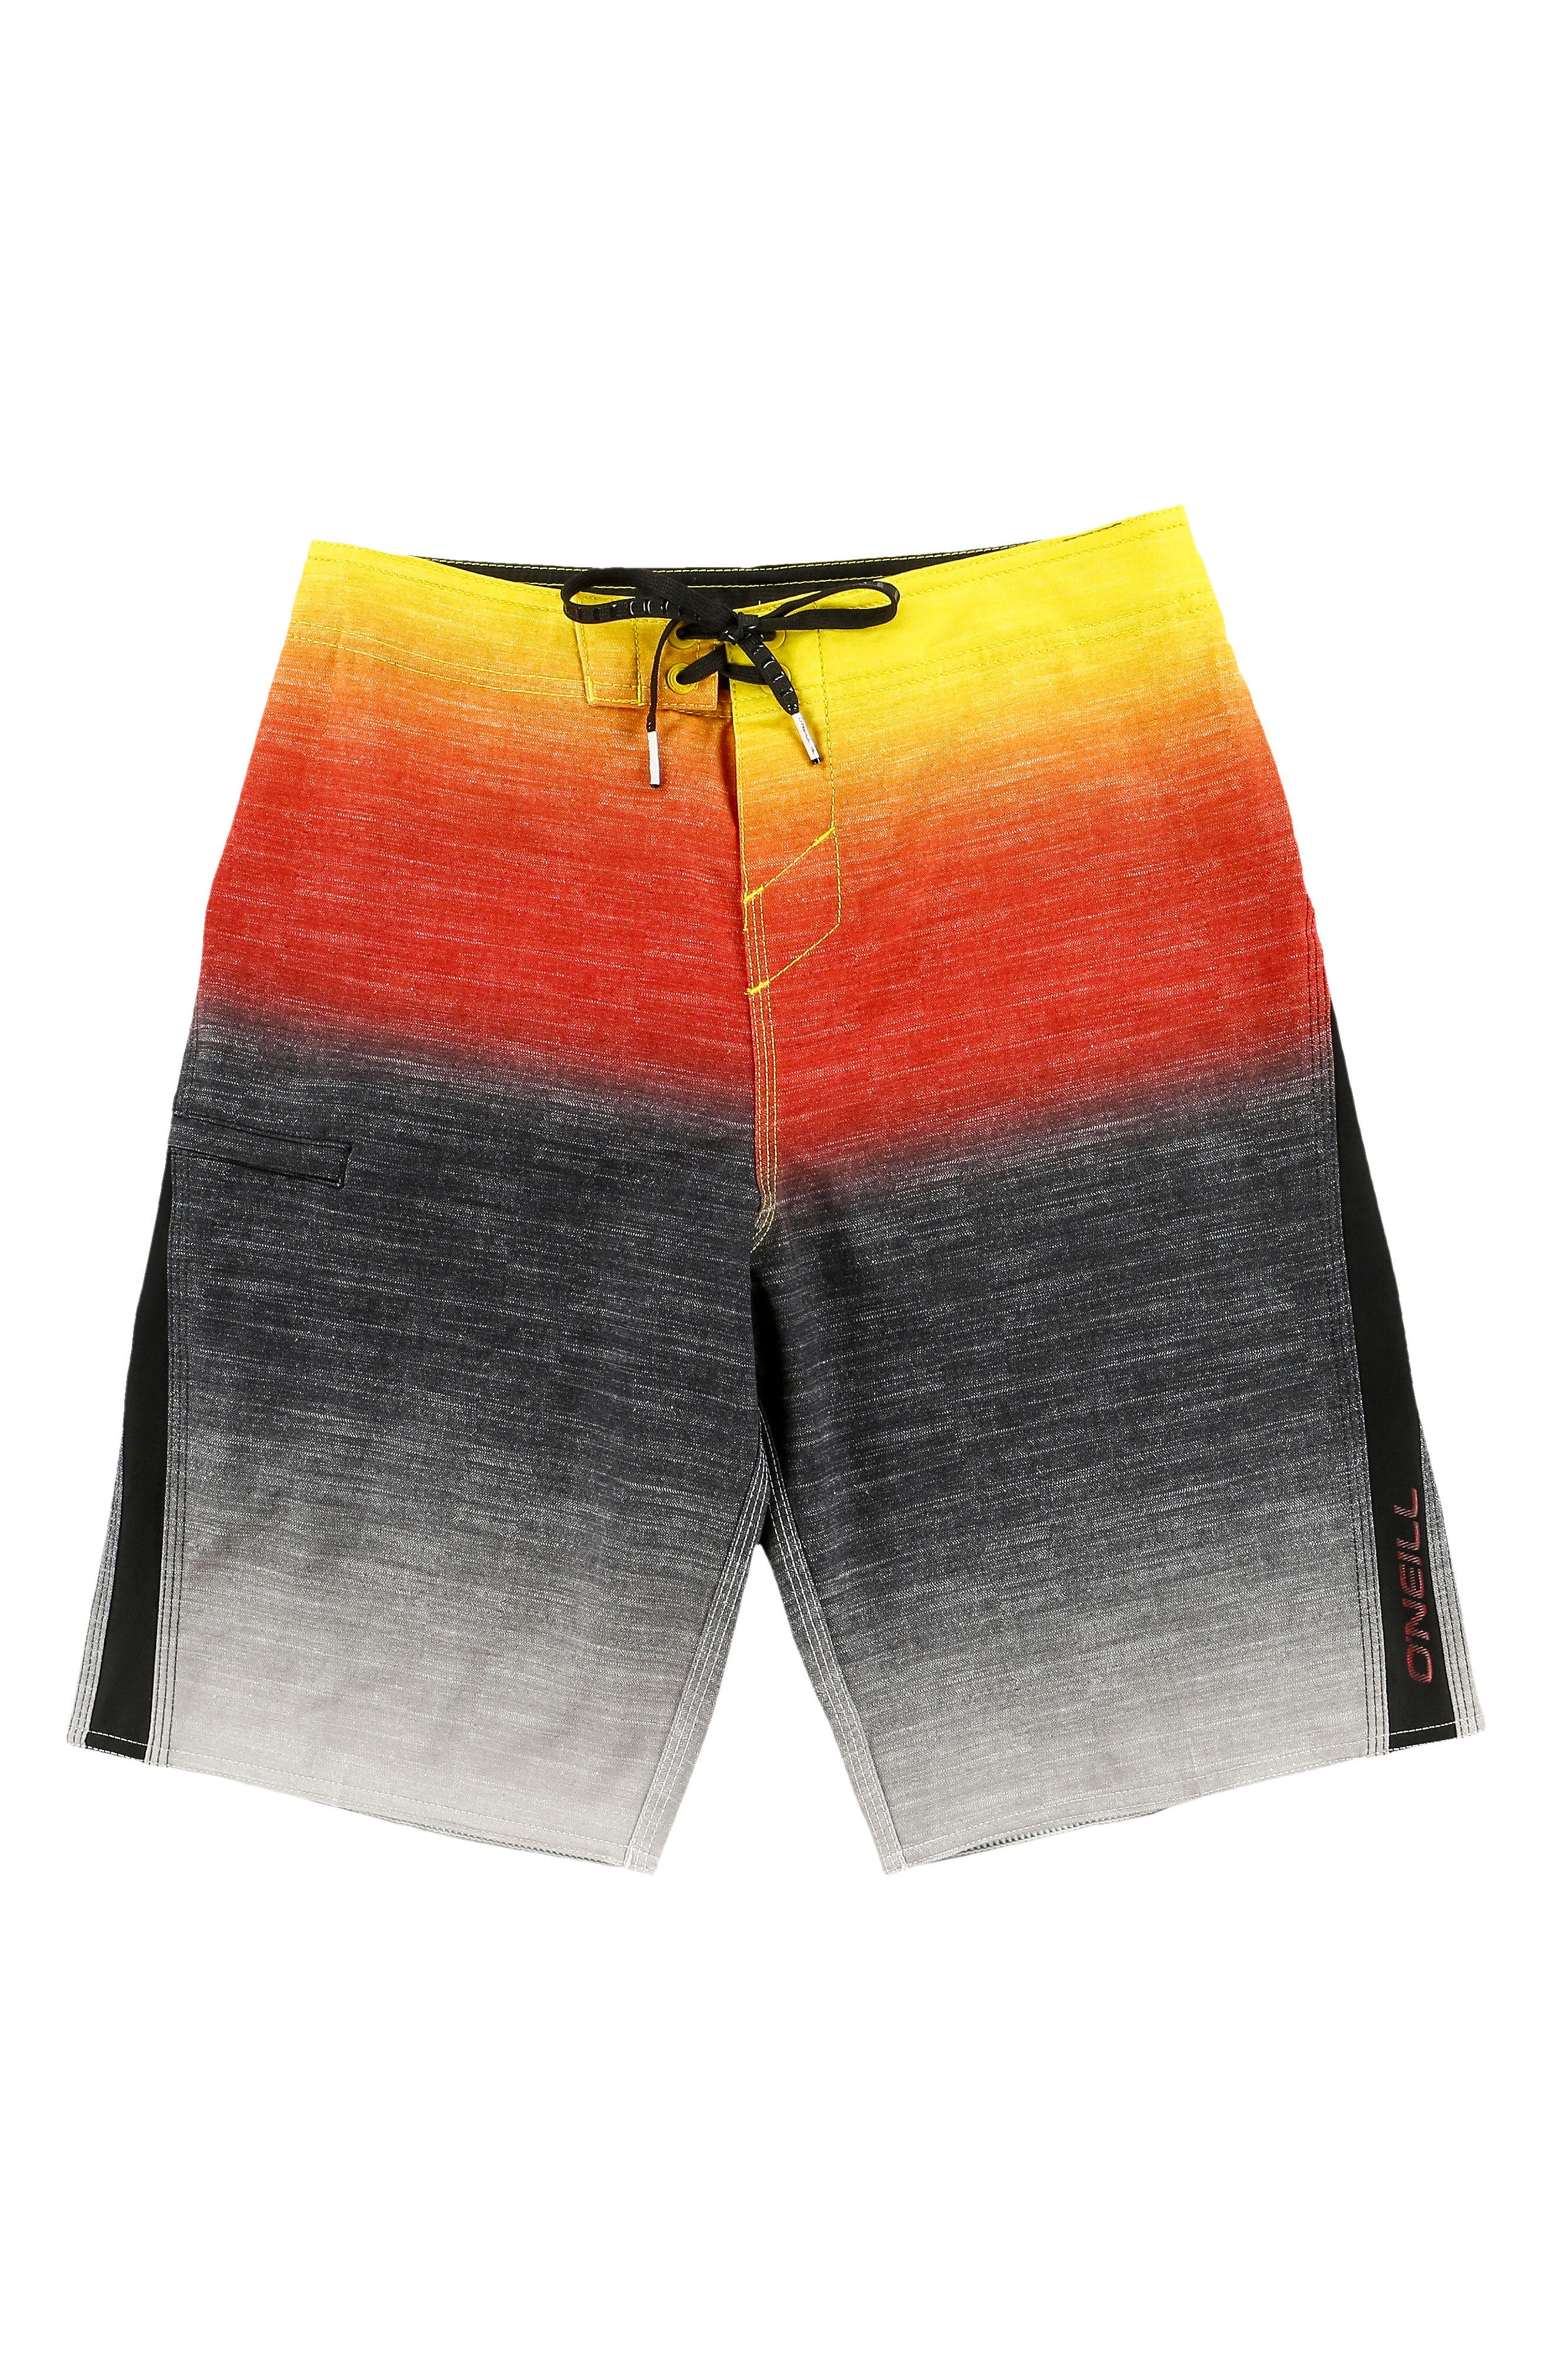 O'Neill Sneakyfreak Fader Board Shorts (Big Boys)